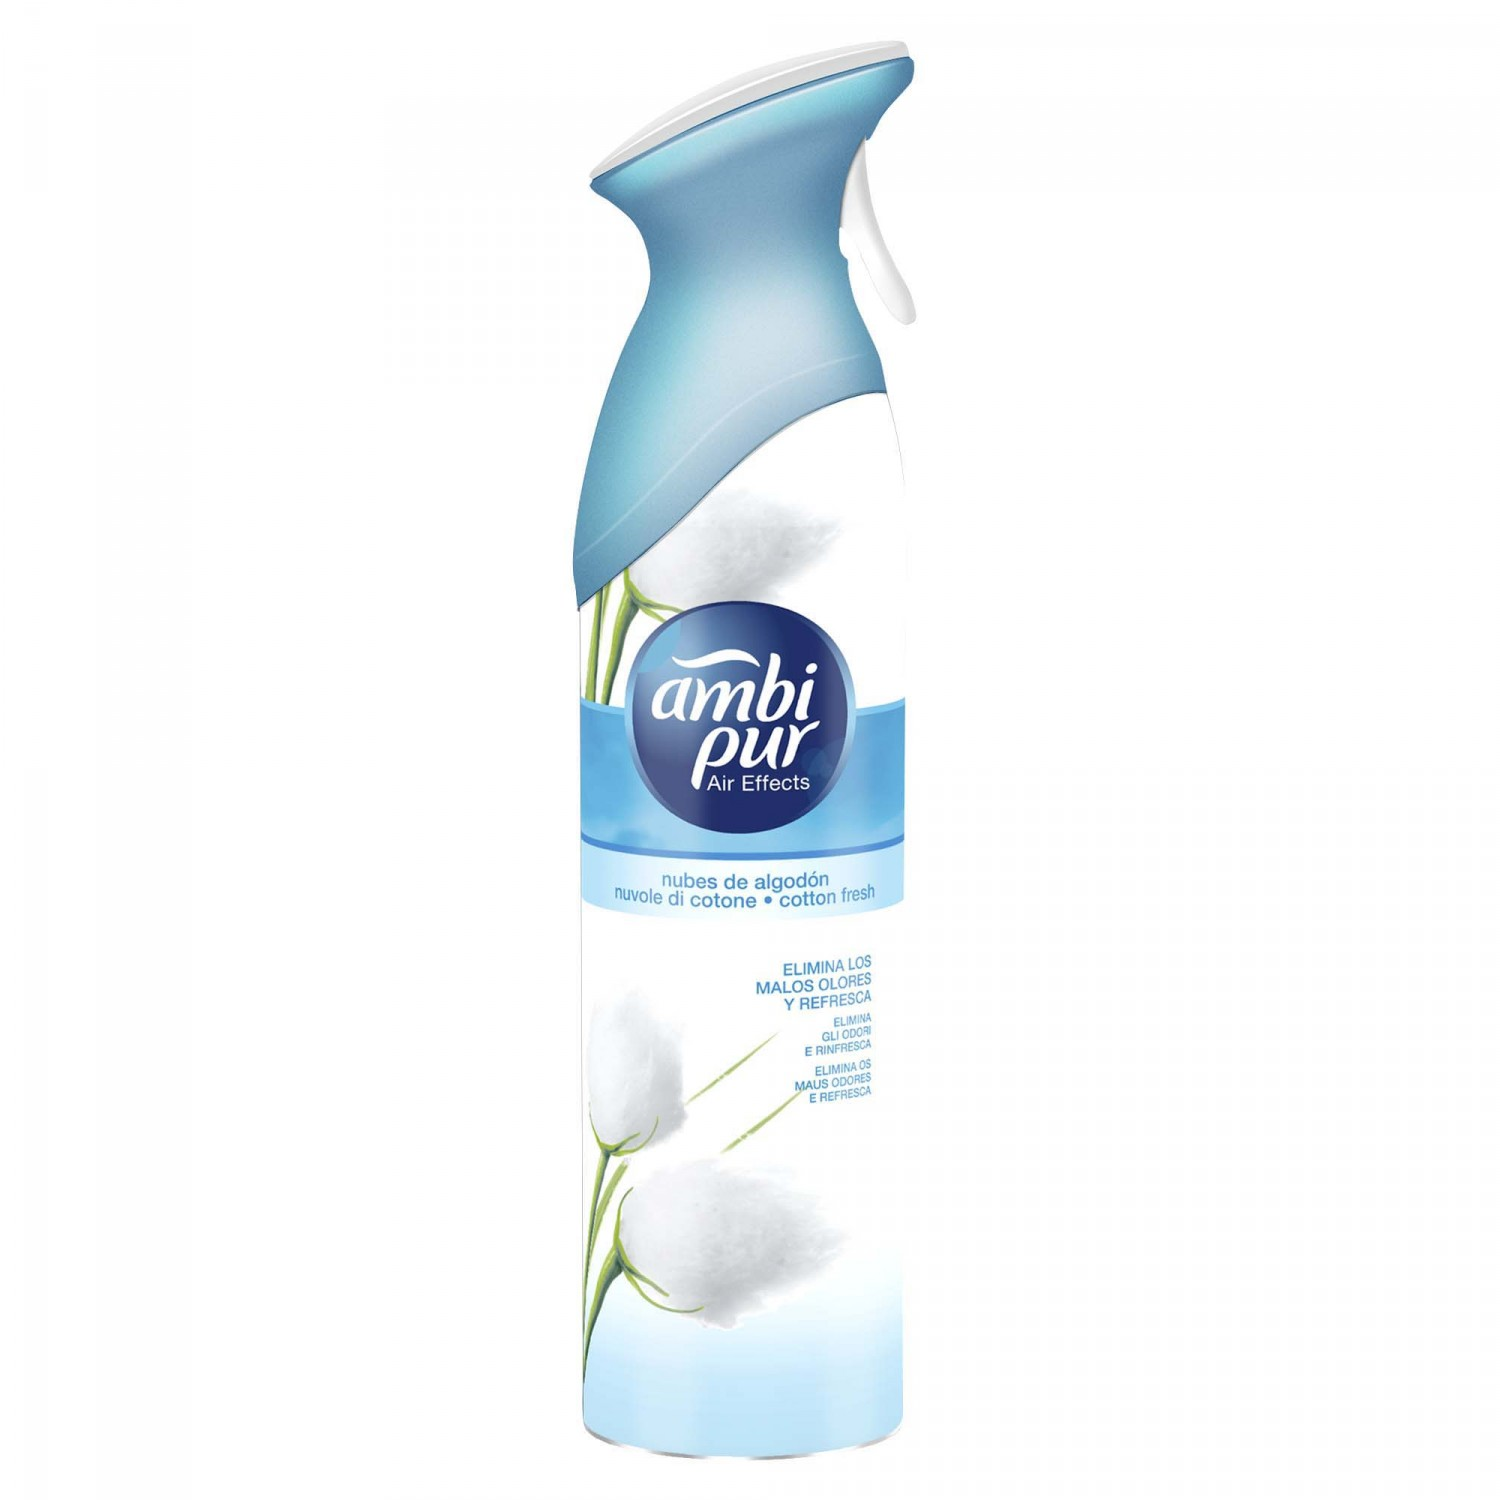 Ambi Pur ambientador air effects nubes algodon de 30cl.